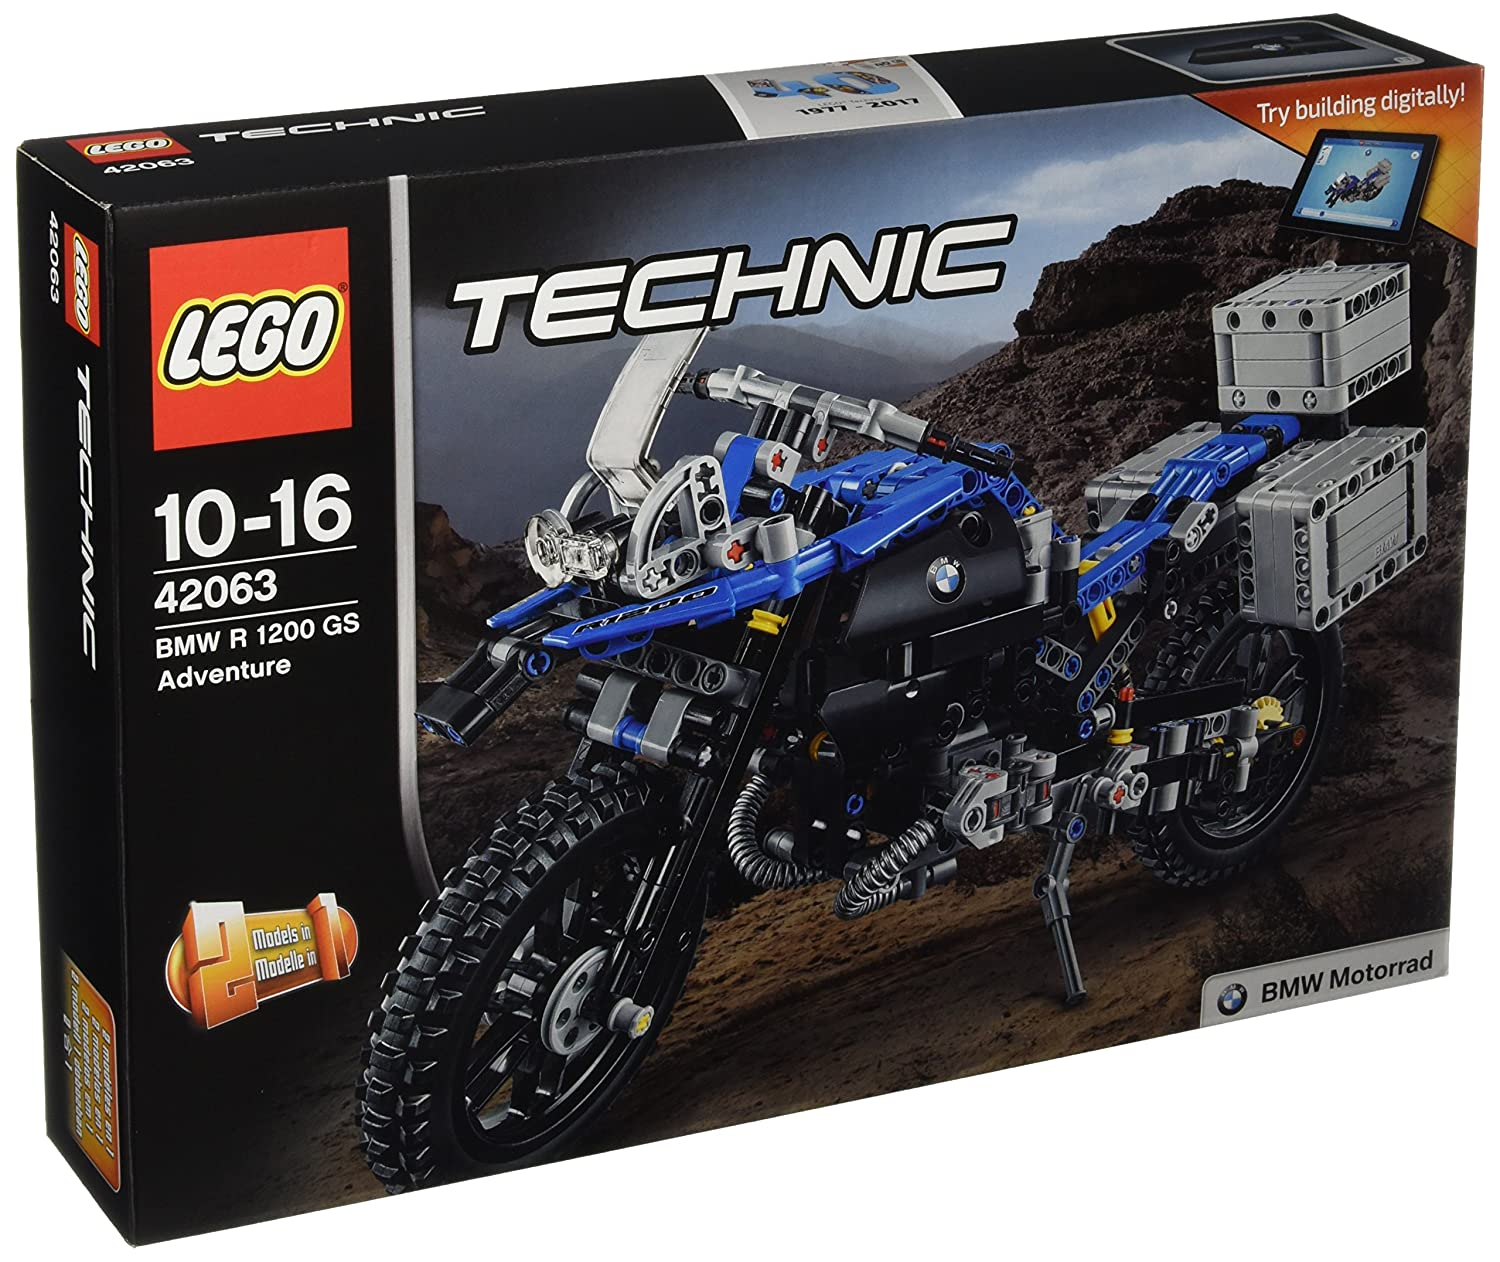 LEGO Technic BMW R GS aventura